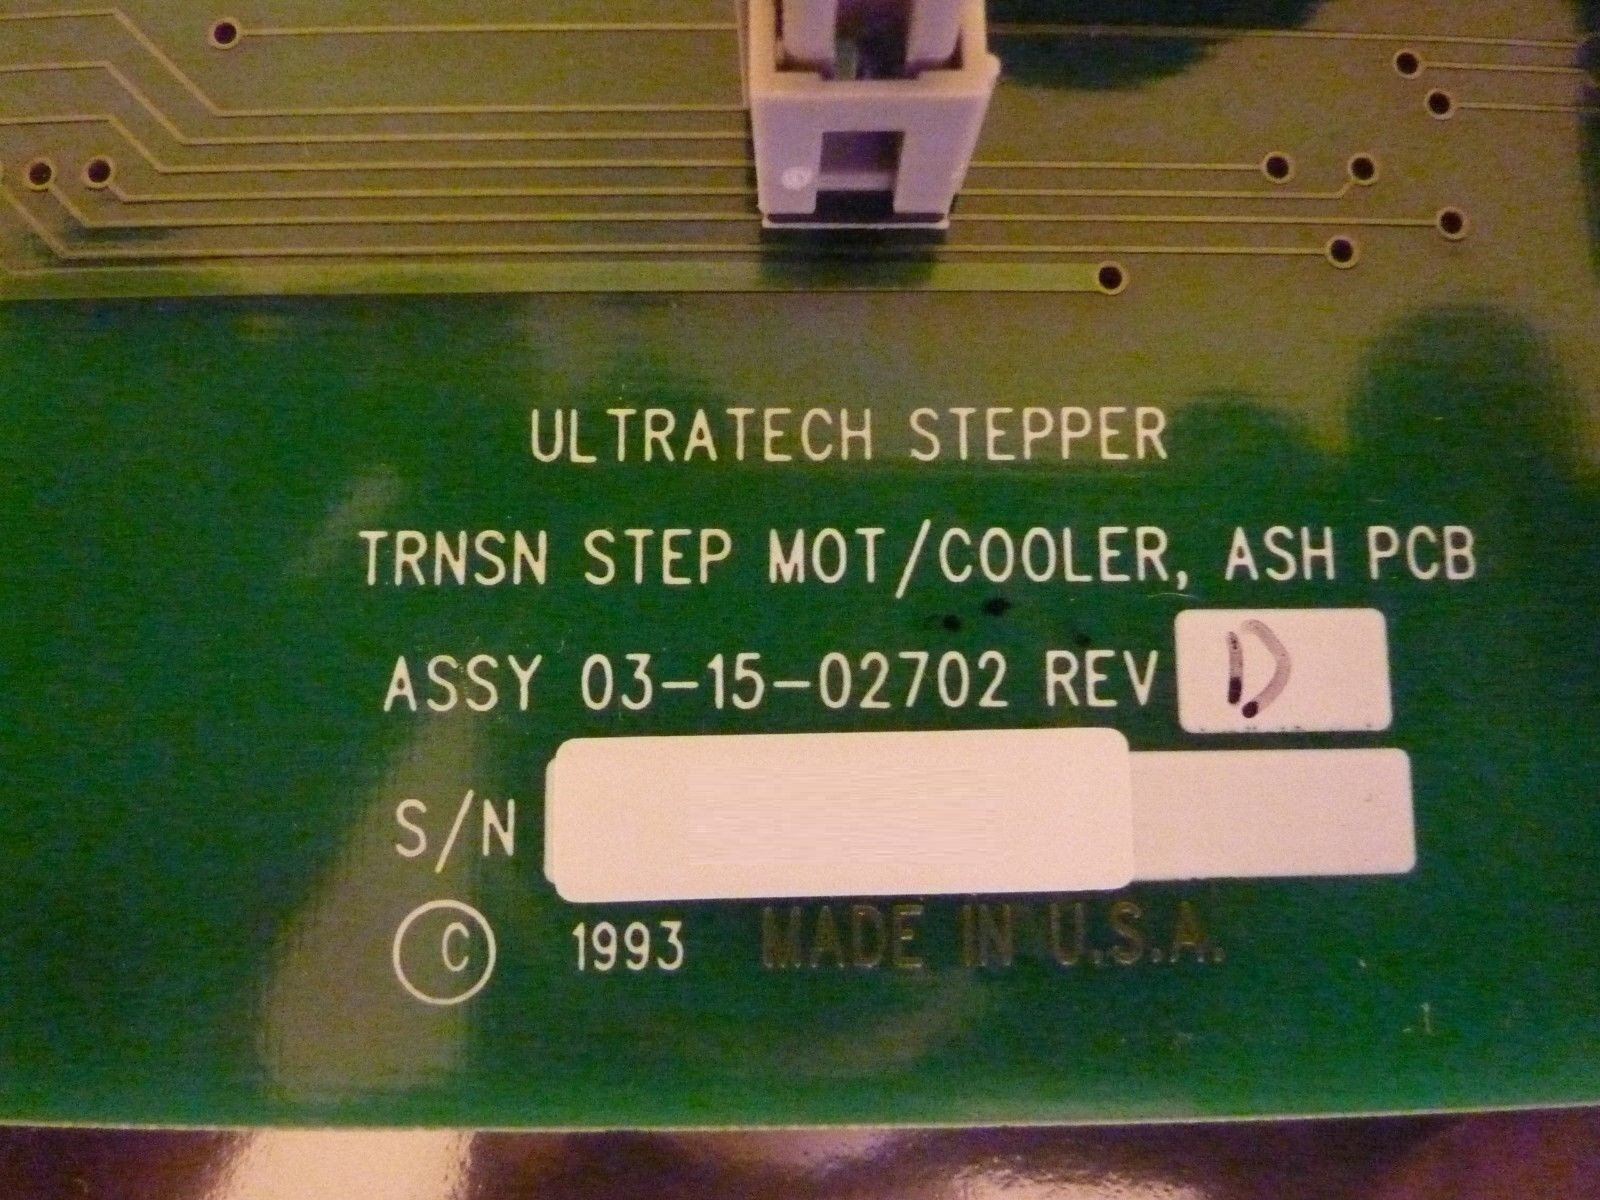 Ultratech Stepper 03-15-02702 Transition Step MOT/COOLER ASH PCB Card Rev D Used